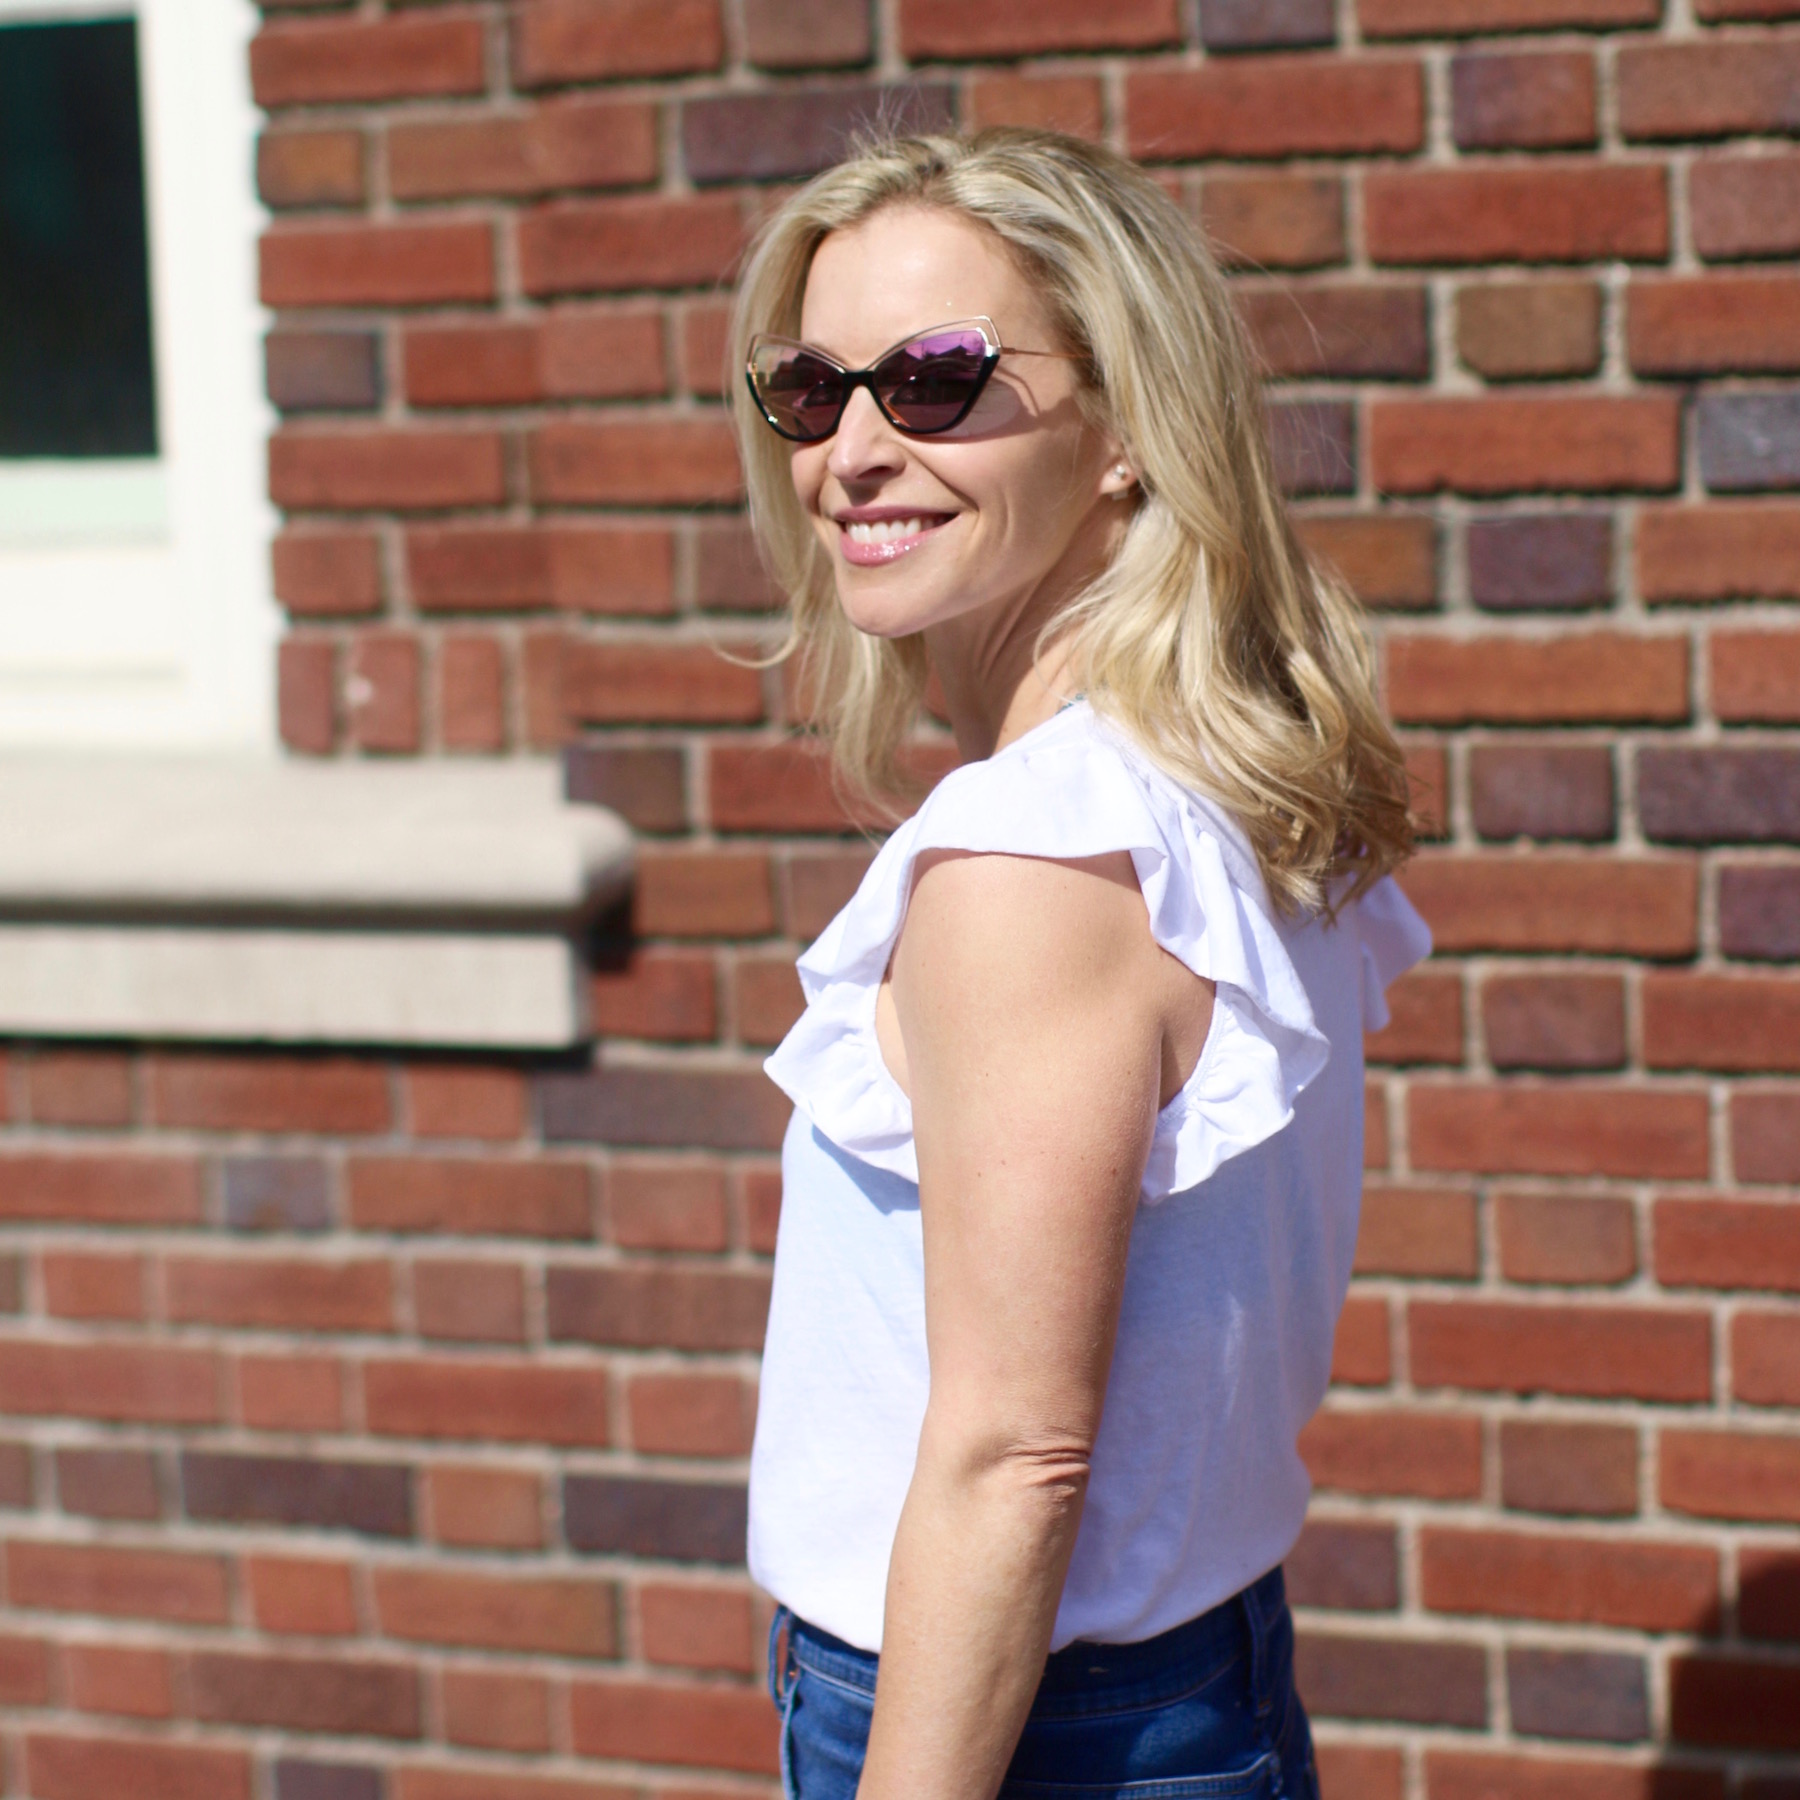 Sunglasses  /  T-Shirt (mine is from  West  and not available online, but similar styles here.)